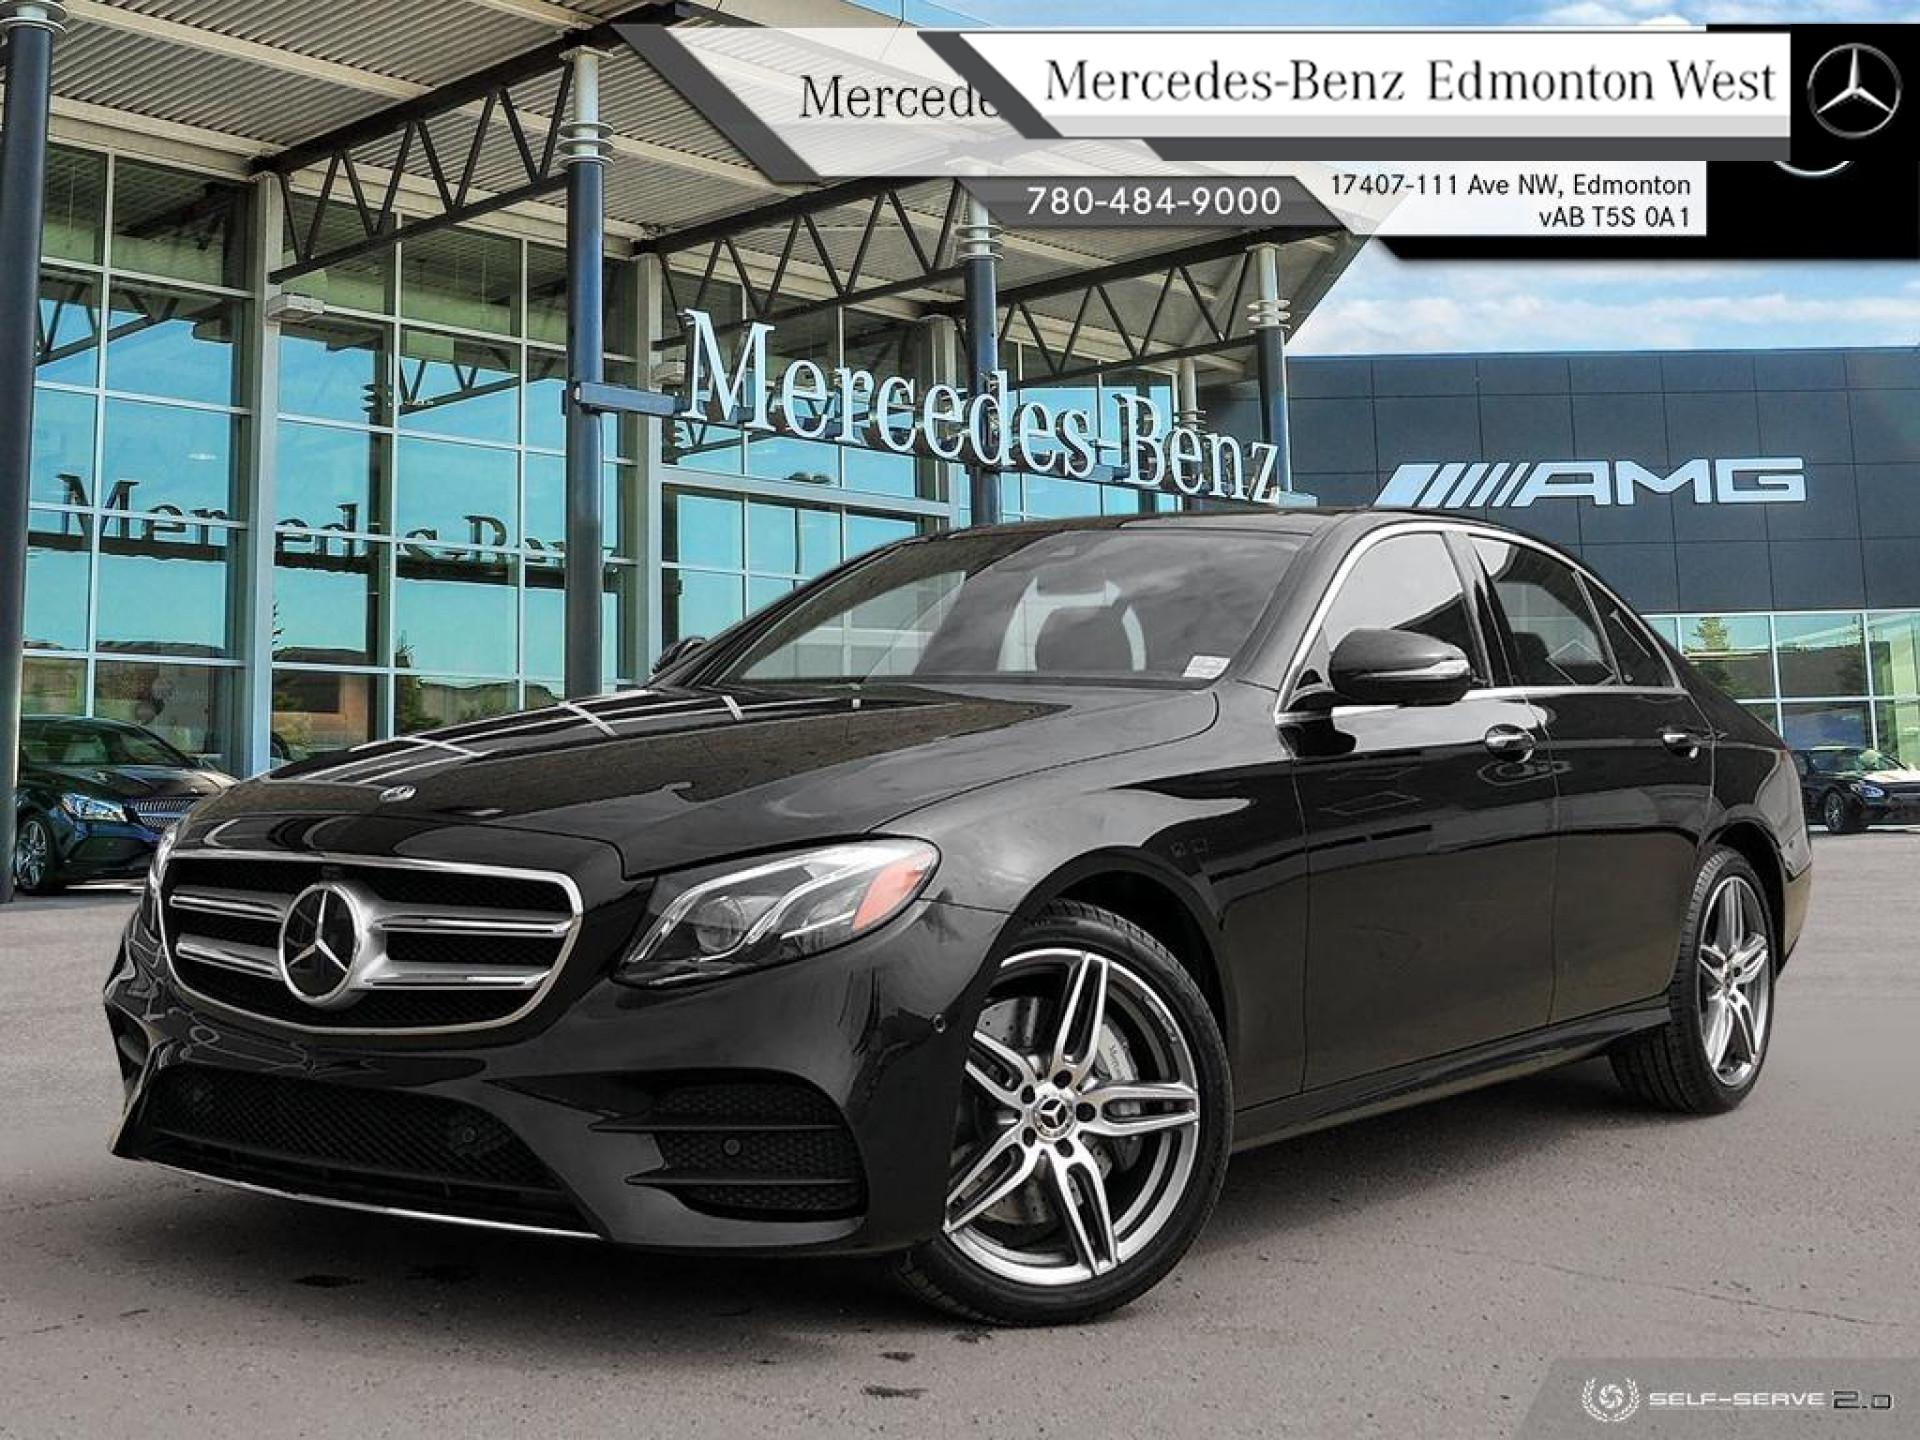 New 2020 Mercedes Benz E-Class E 350 4MATIC Sedan